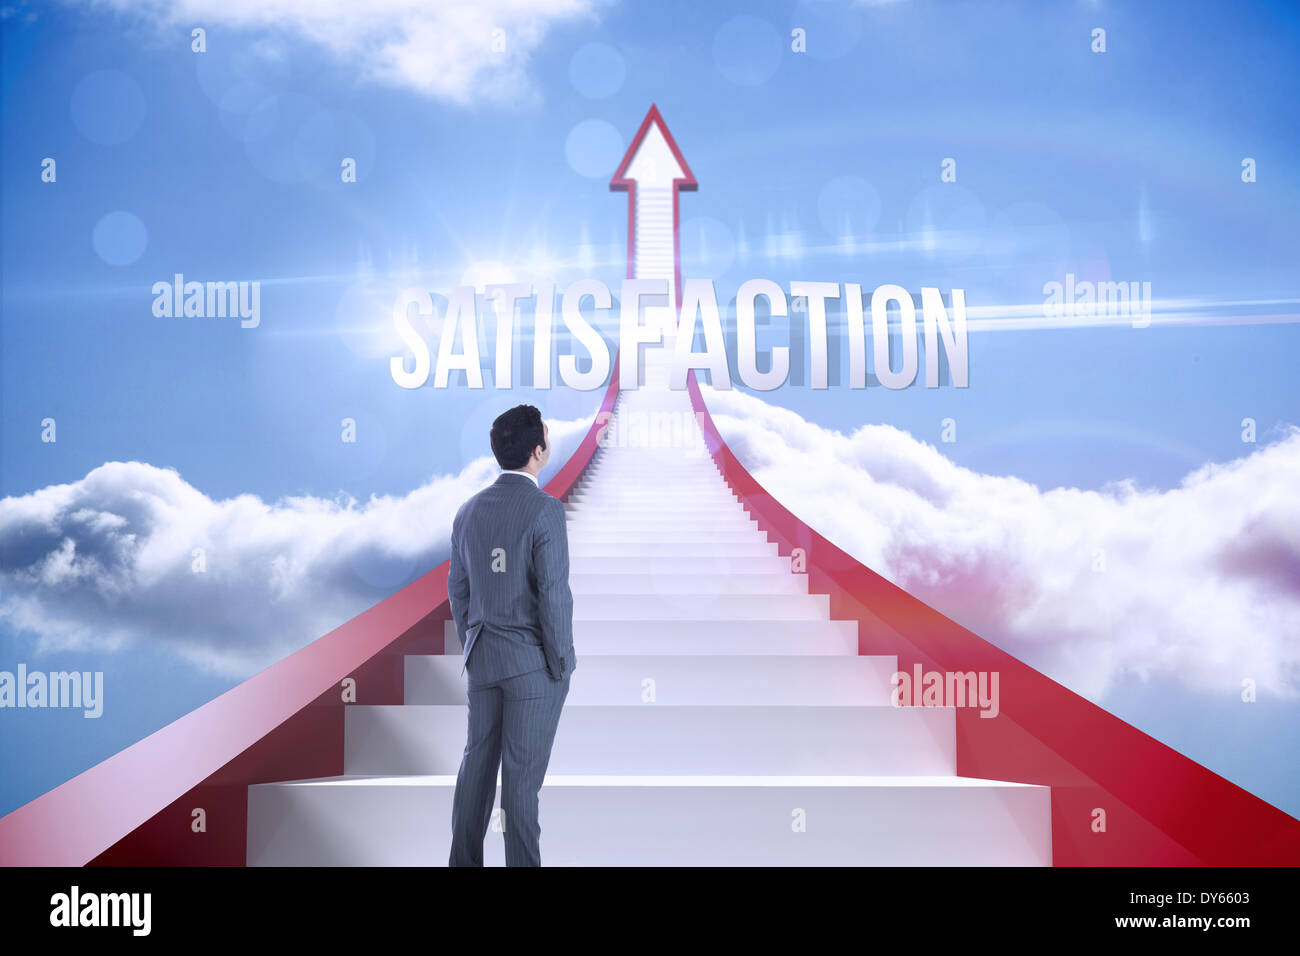 Satisfaction against red steps arrow pointing up against sky - Stock Image